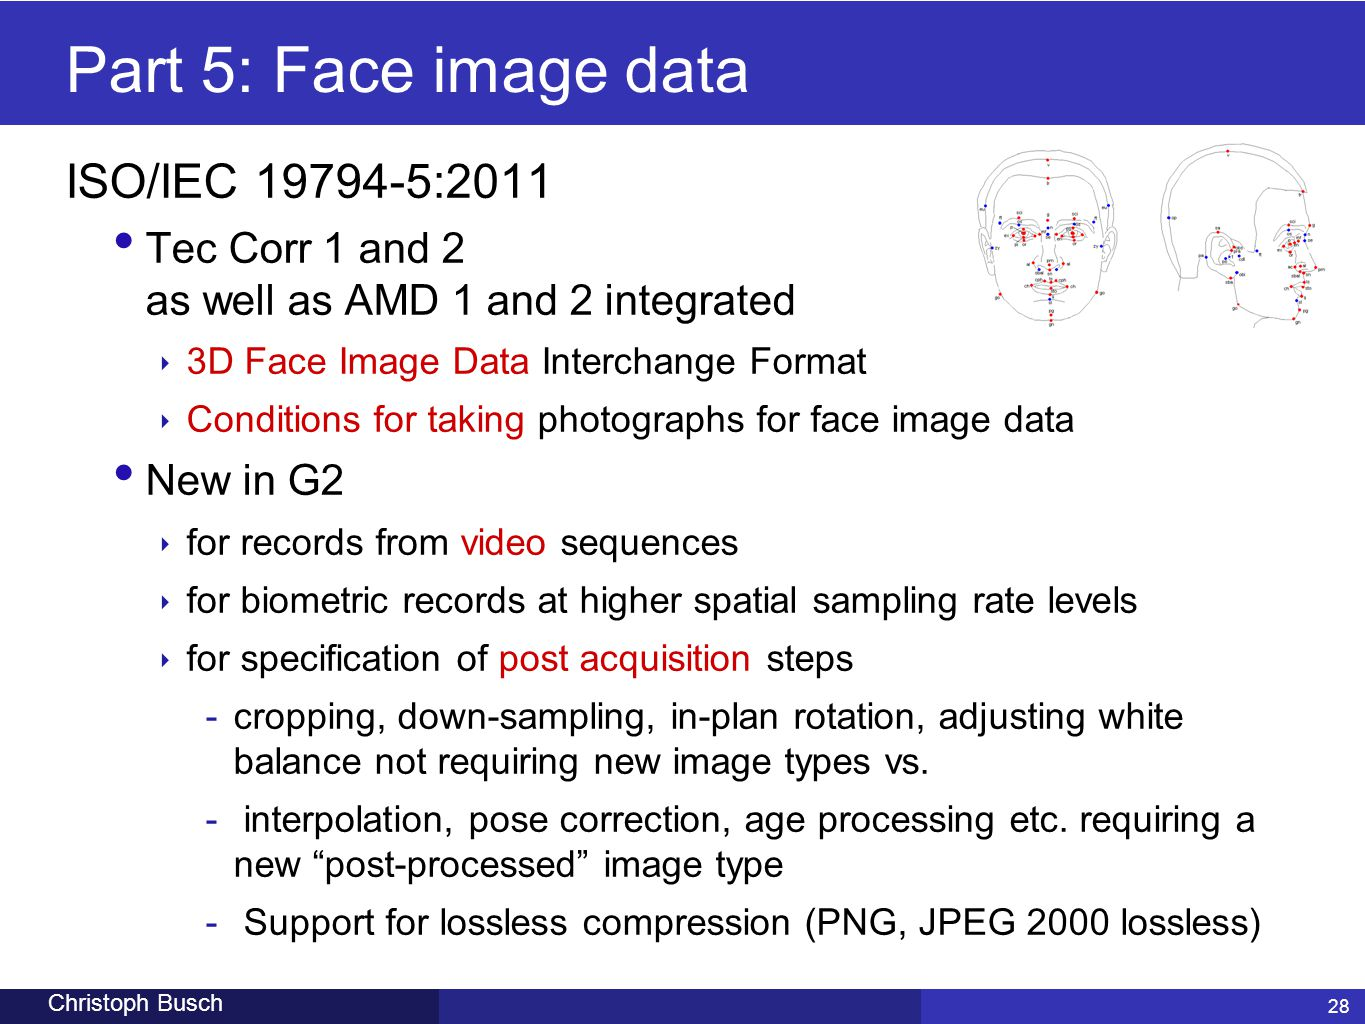 28 Christoph Busch 28 Part 5: Face image data ISO/IEC 19794-5:2011 Tec Corr 1 and 2 as well as AMD 1 and 2 integrated ‣ 3D Face Image Data Interchange